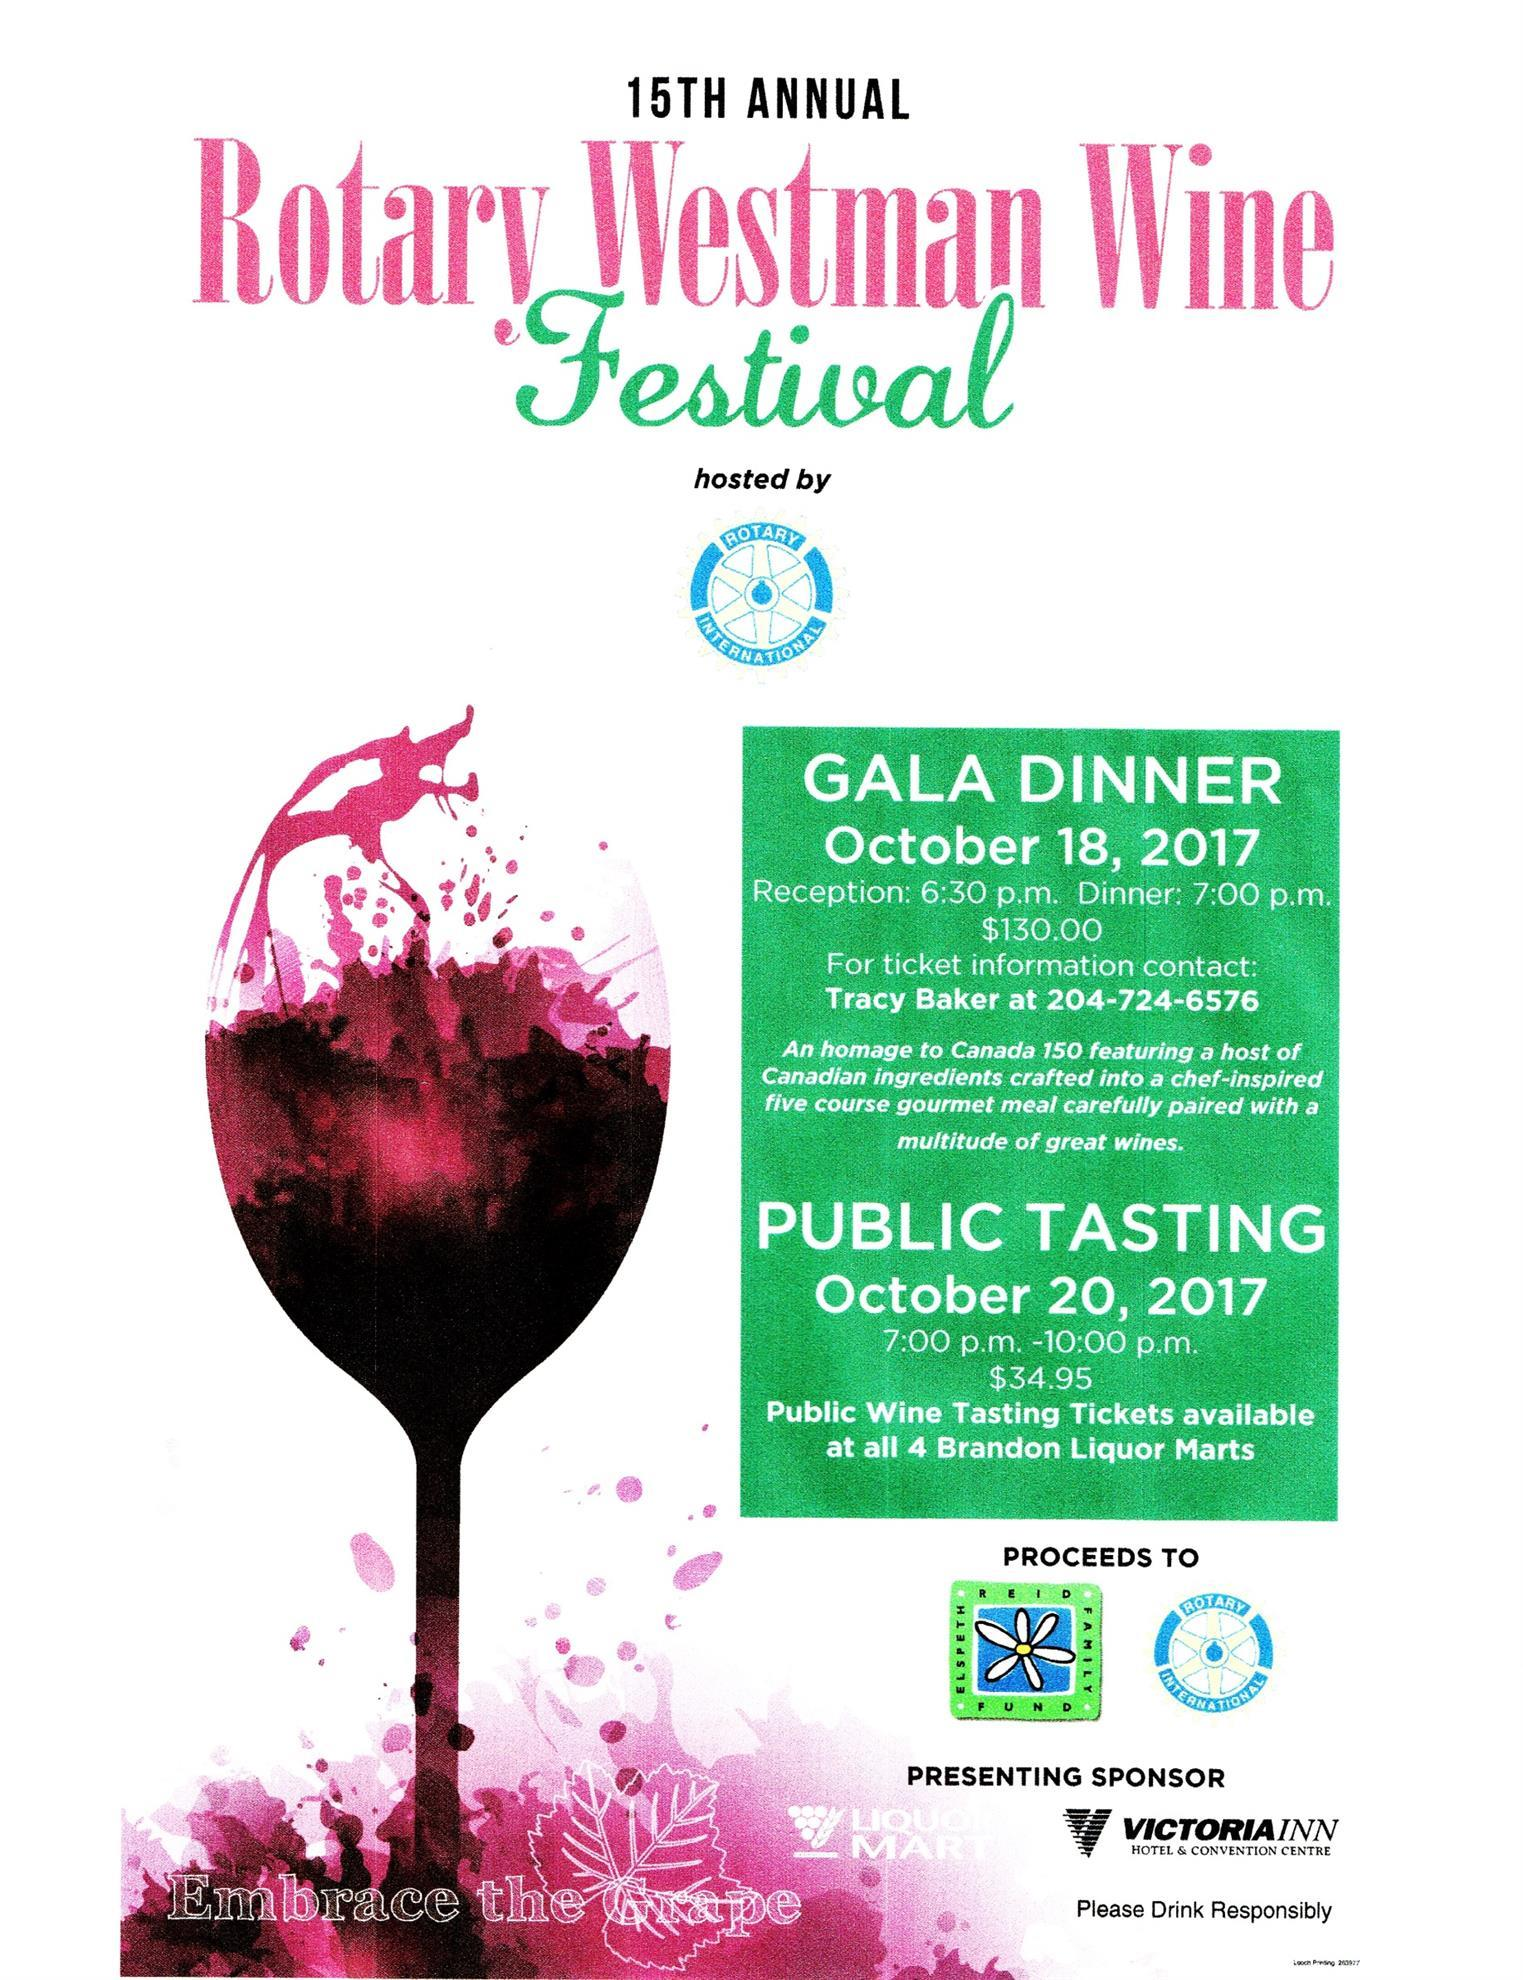 2017 Wine Festival The Rotary Club Of Brandon Is Pleased To Announce